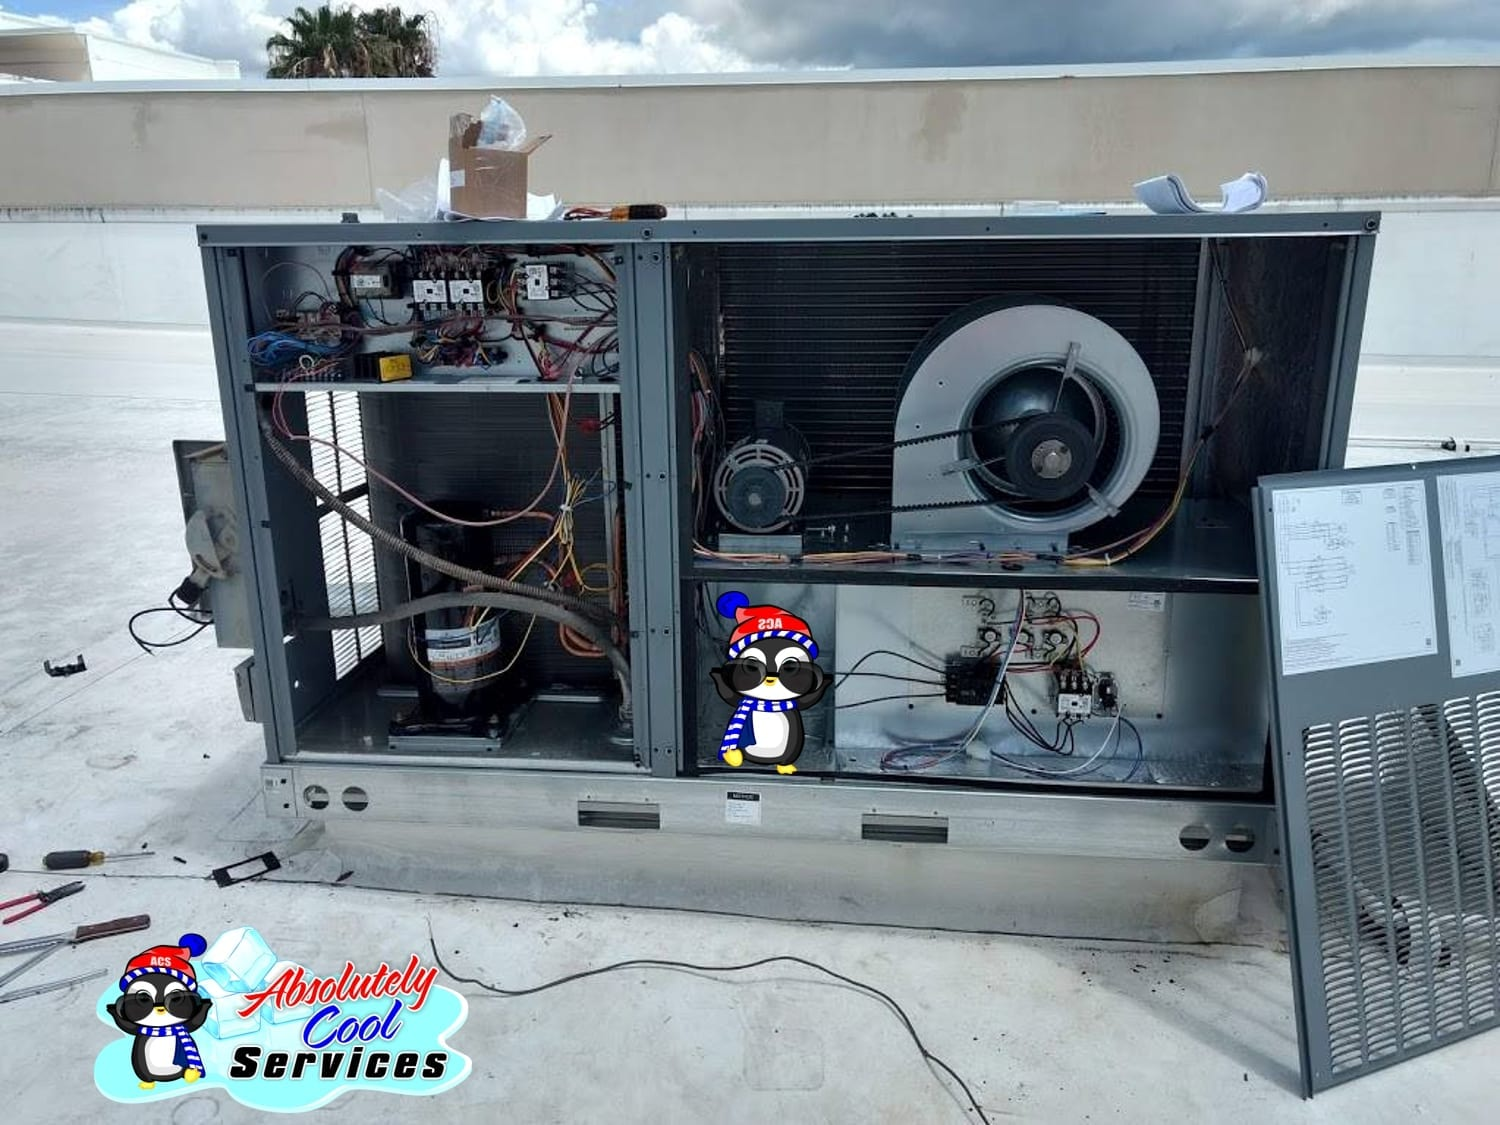 Roof Air Conditioning | HVAC Diagnosis Service near Delray Beach